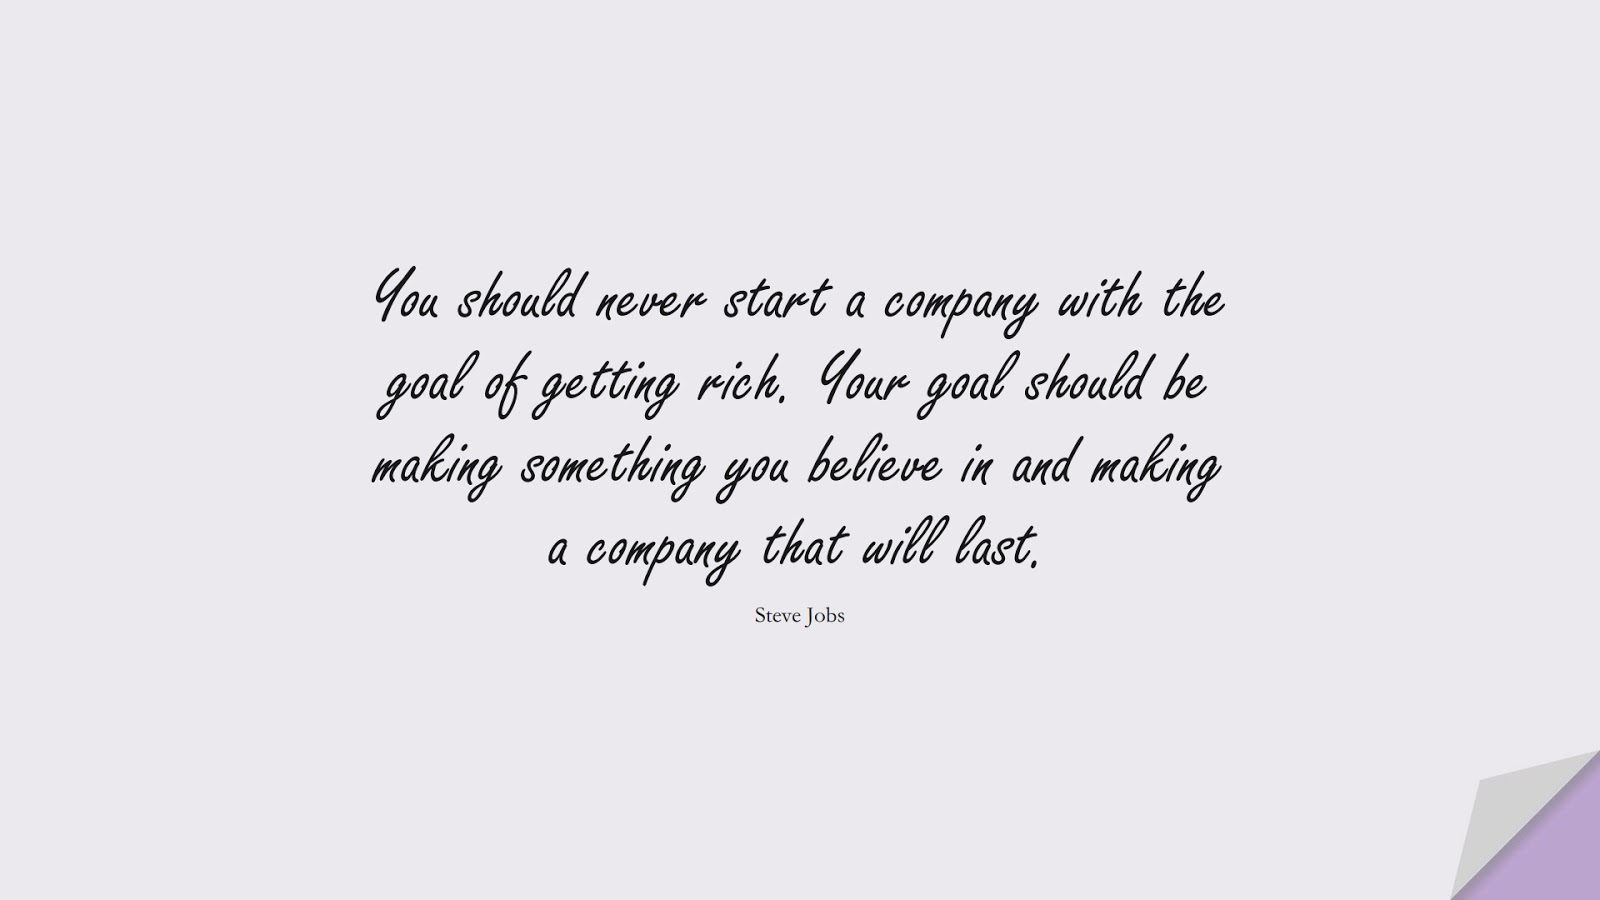 You should never start a company with the goal of getting rich. Your goal should be making something you believe in and making a company that will last. (Steve Jobs);  #SteveJobsQuotes